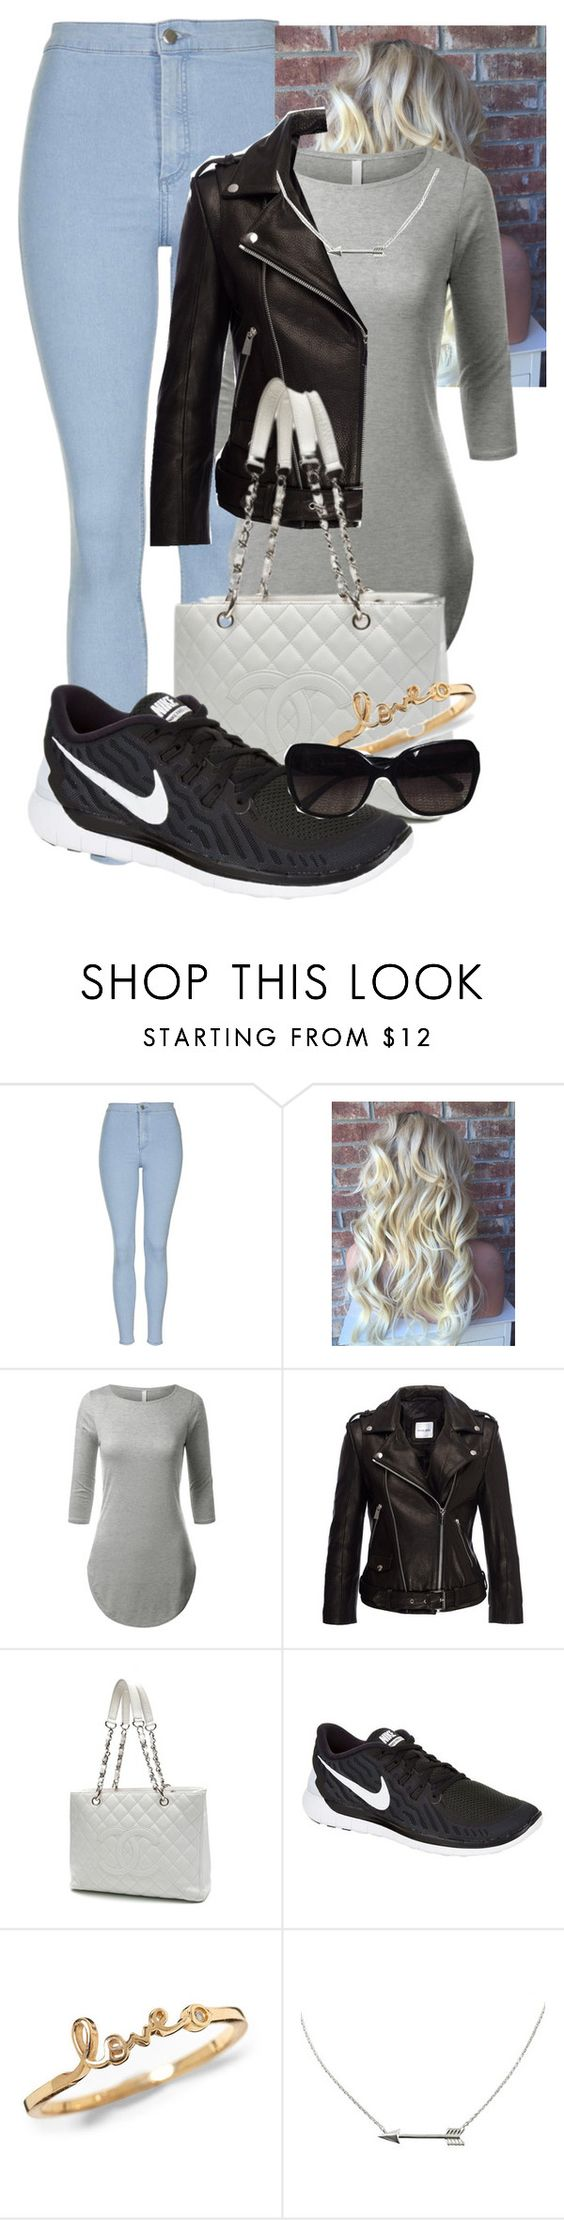 """Untitled #126"" by lesliekabengele on Polyvore featuring Topshop, Chanel, NIKE, women's clothing, women, female, woman, misses and juniors"